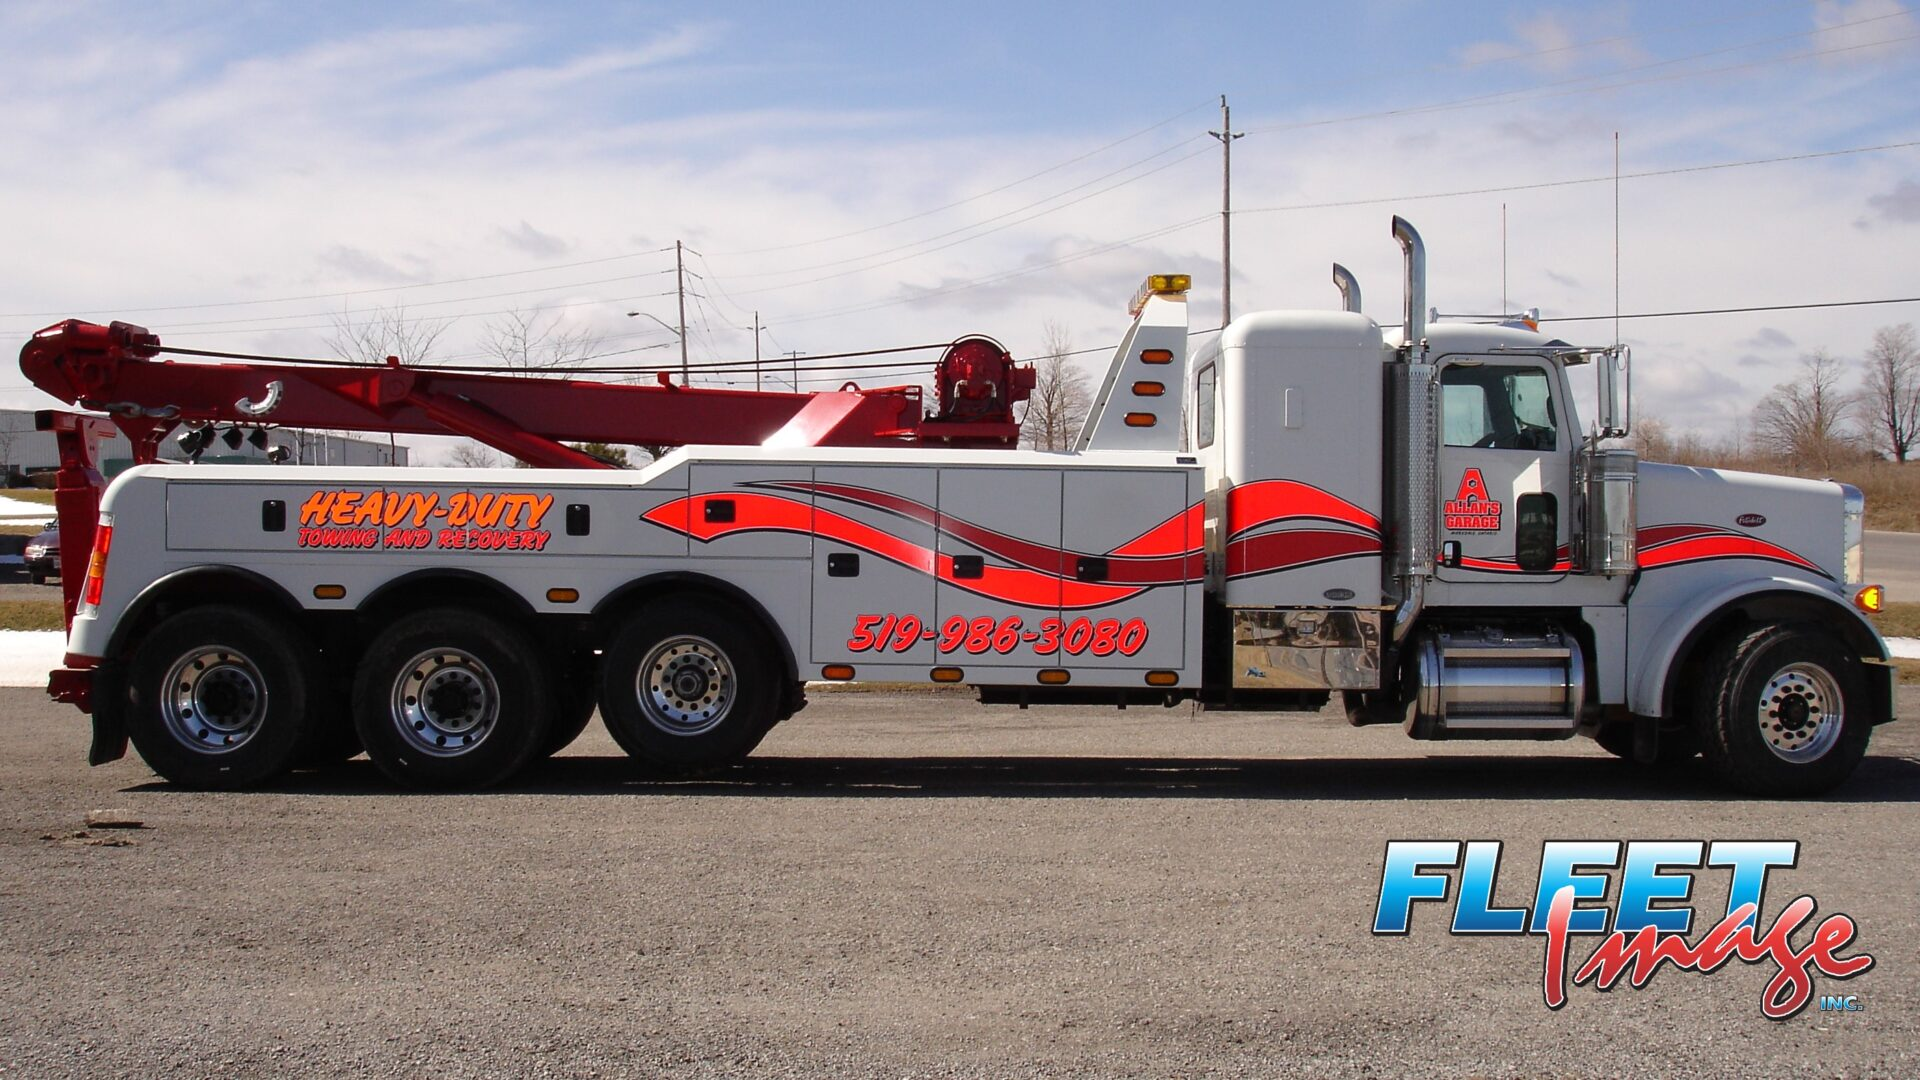 Heavy-Duty Towing and Recovery stickeron avehicle